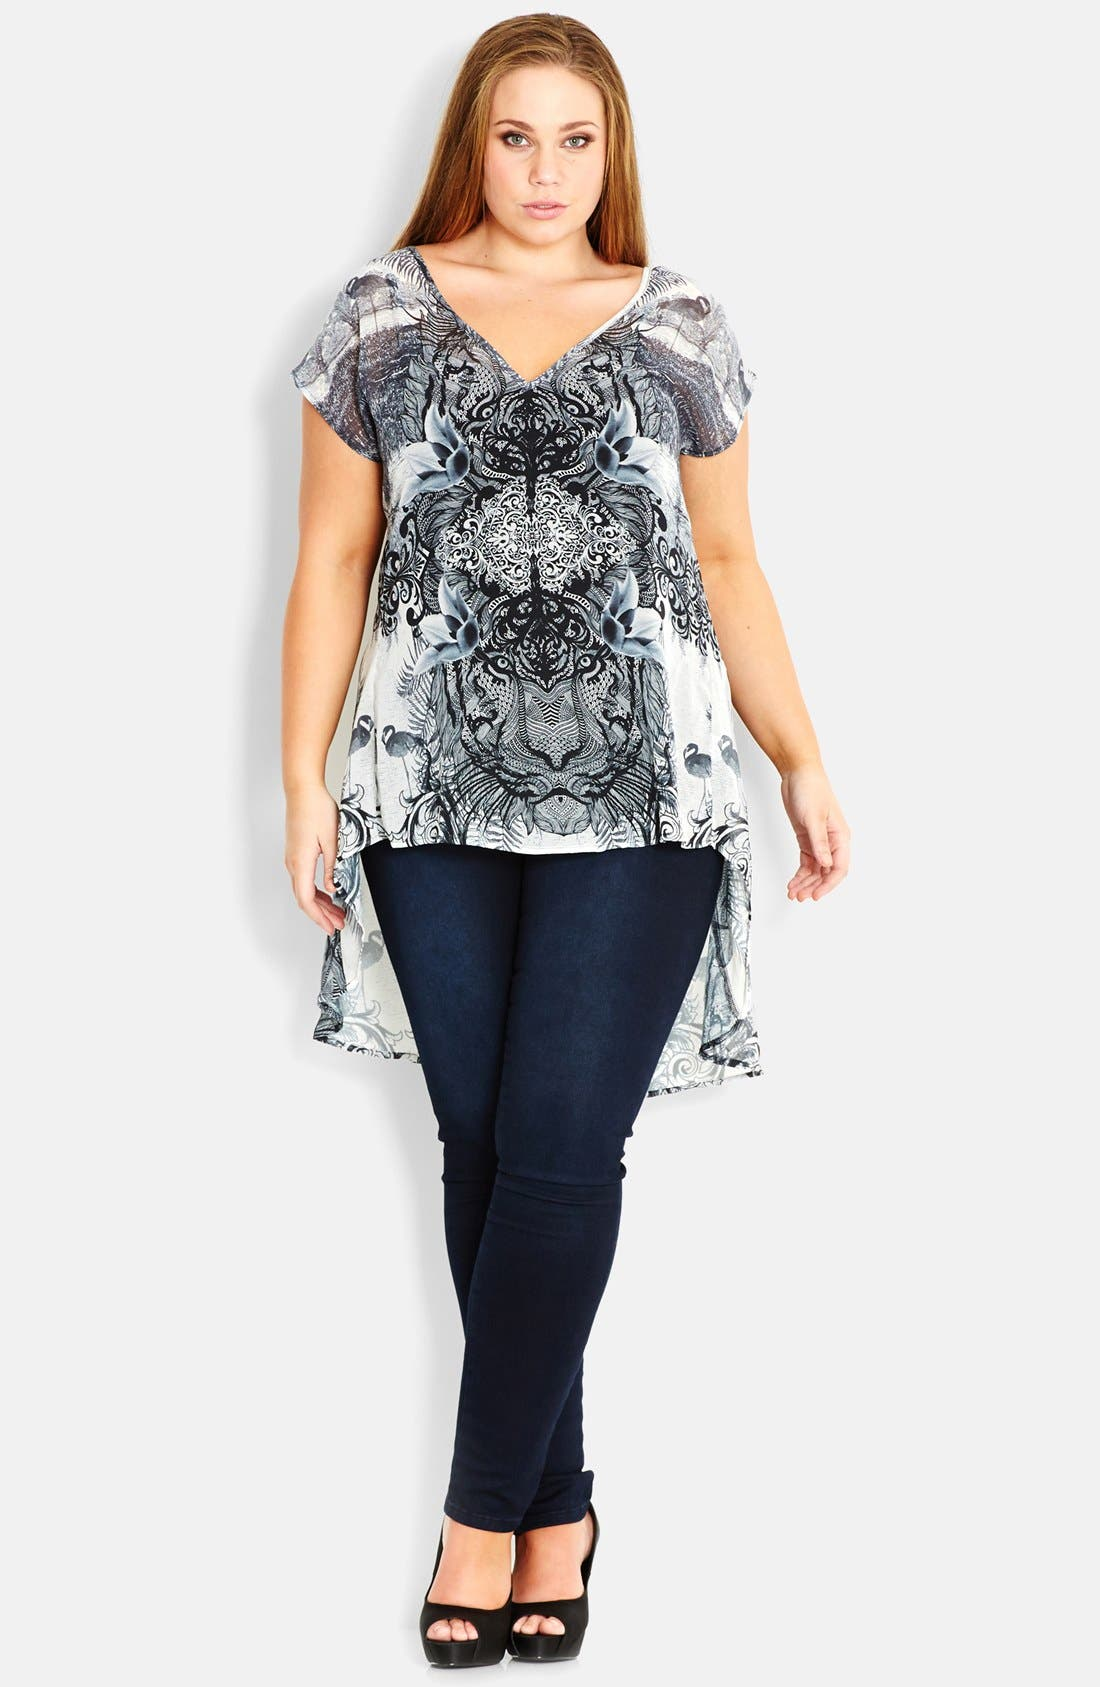 Alternate Image 1 Selected - City Chic 'Tahitian Jungle' High-Low Top (Plus Size)